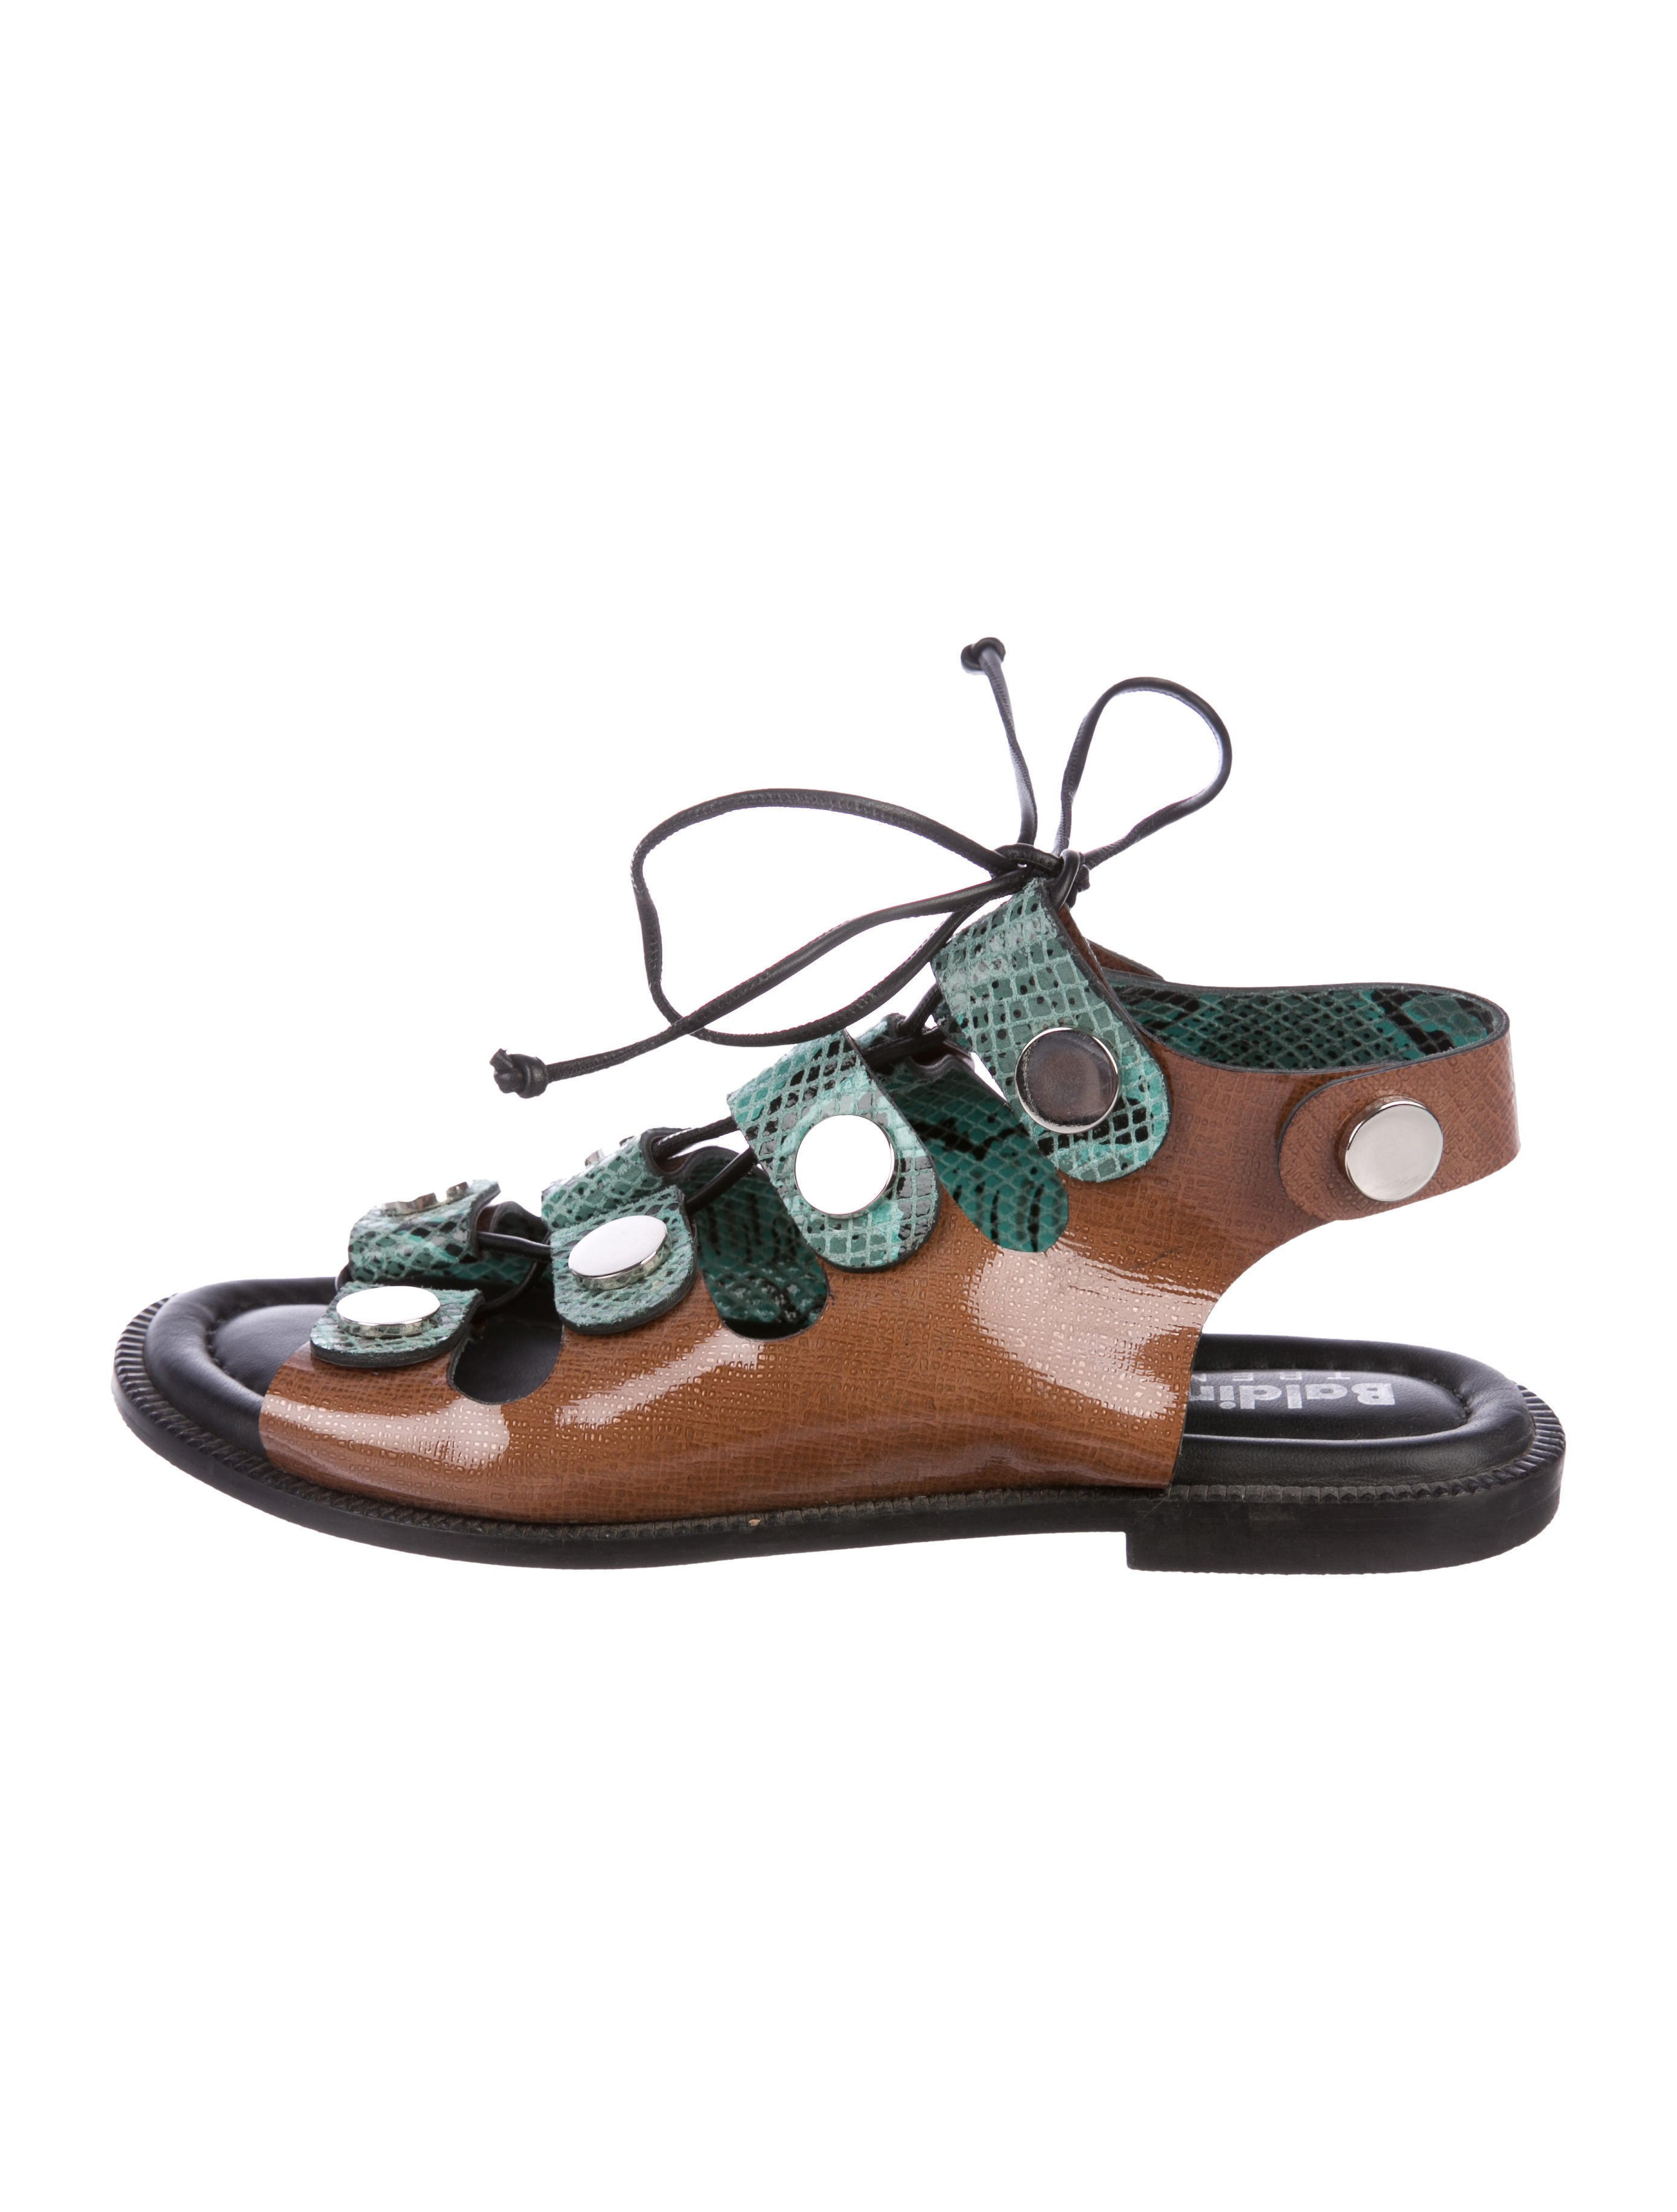 Baldinini Patent Leather Lace-Up Sandals cheap low shipping discount factory outlet tryPa